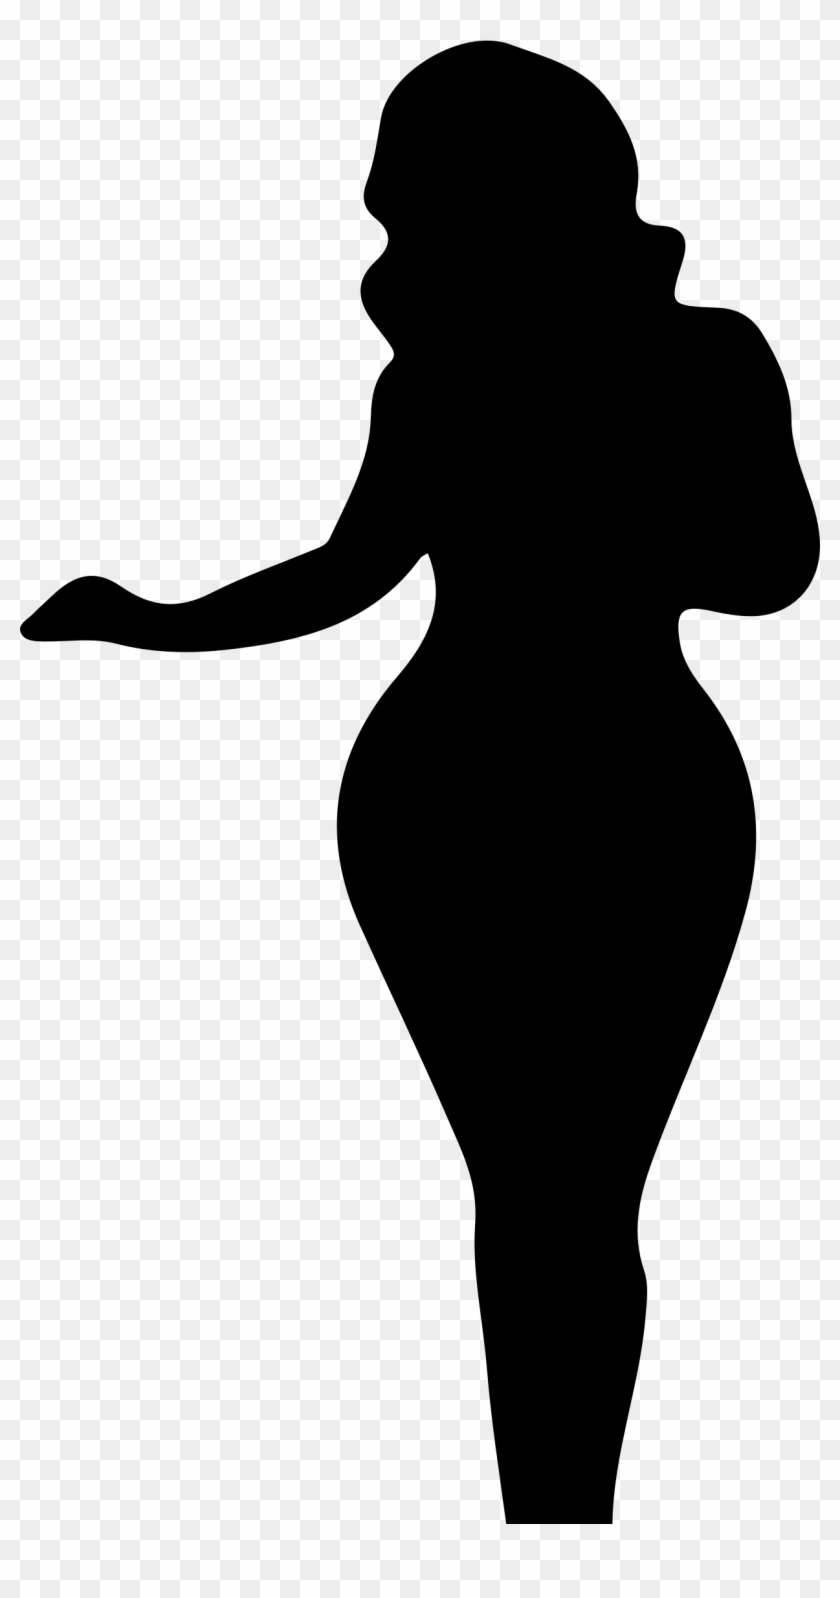 Clipart - Silhouette Of A Woman #6026